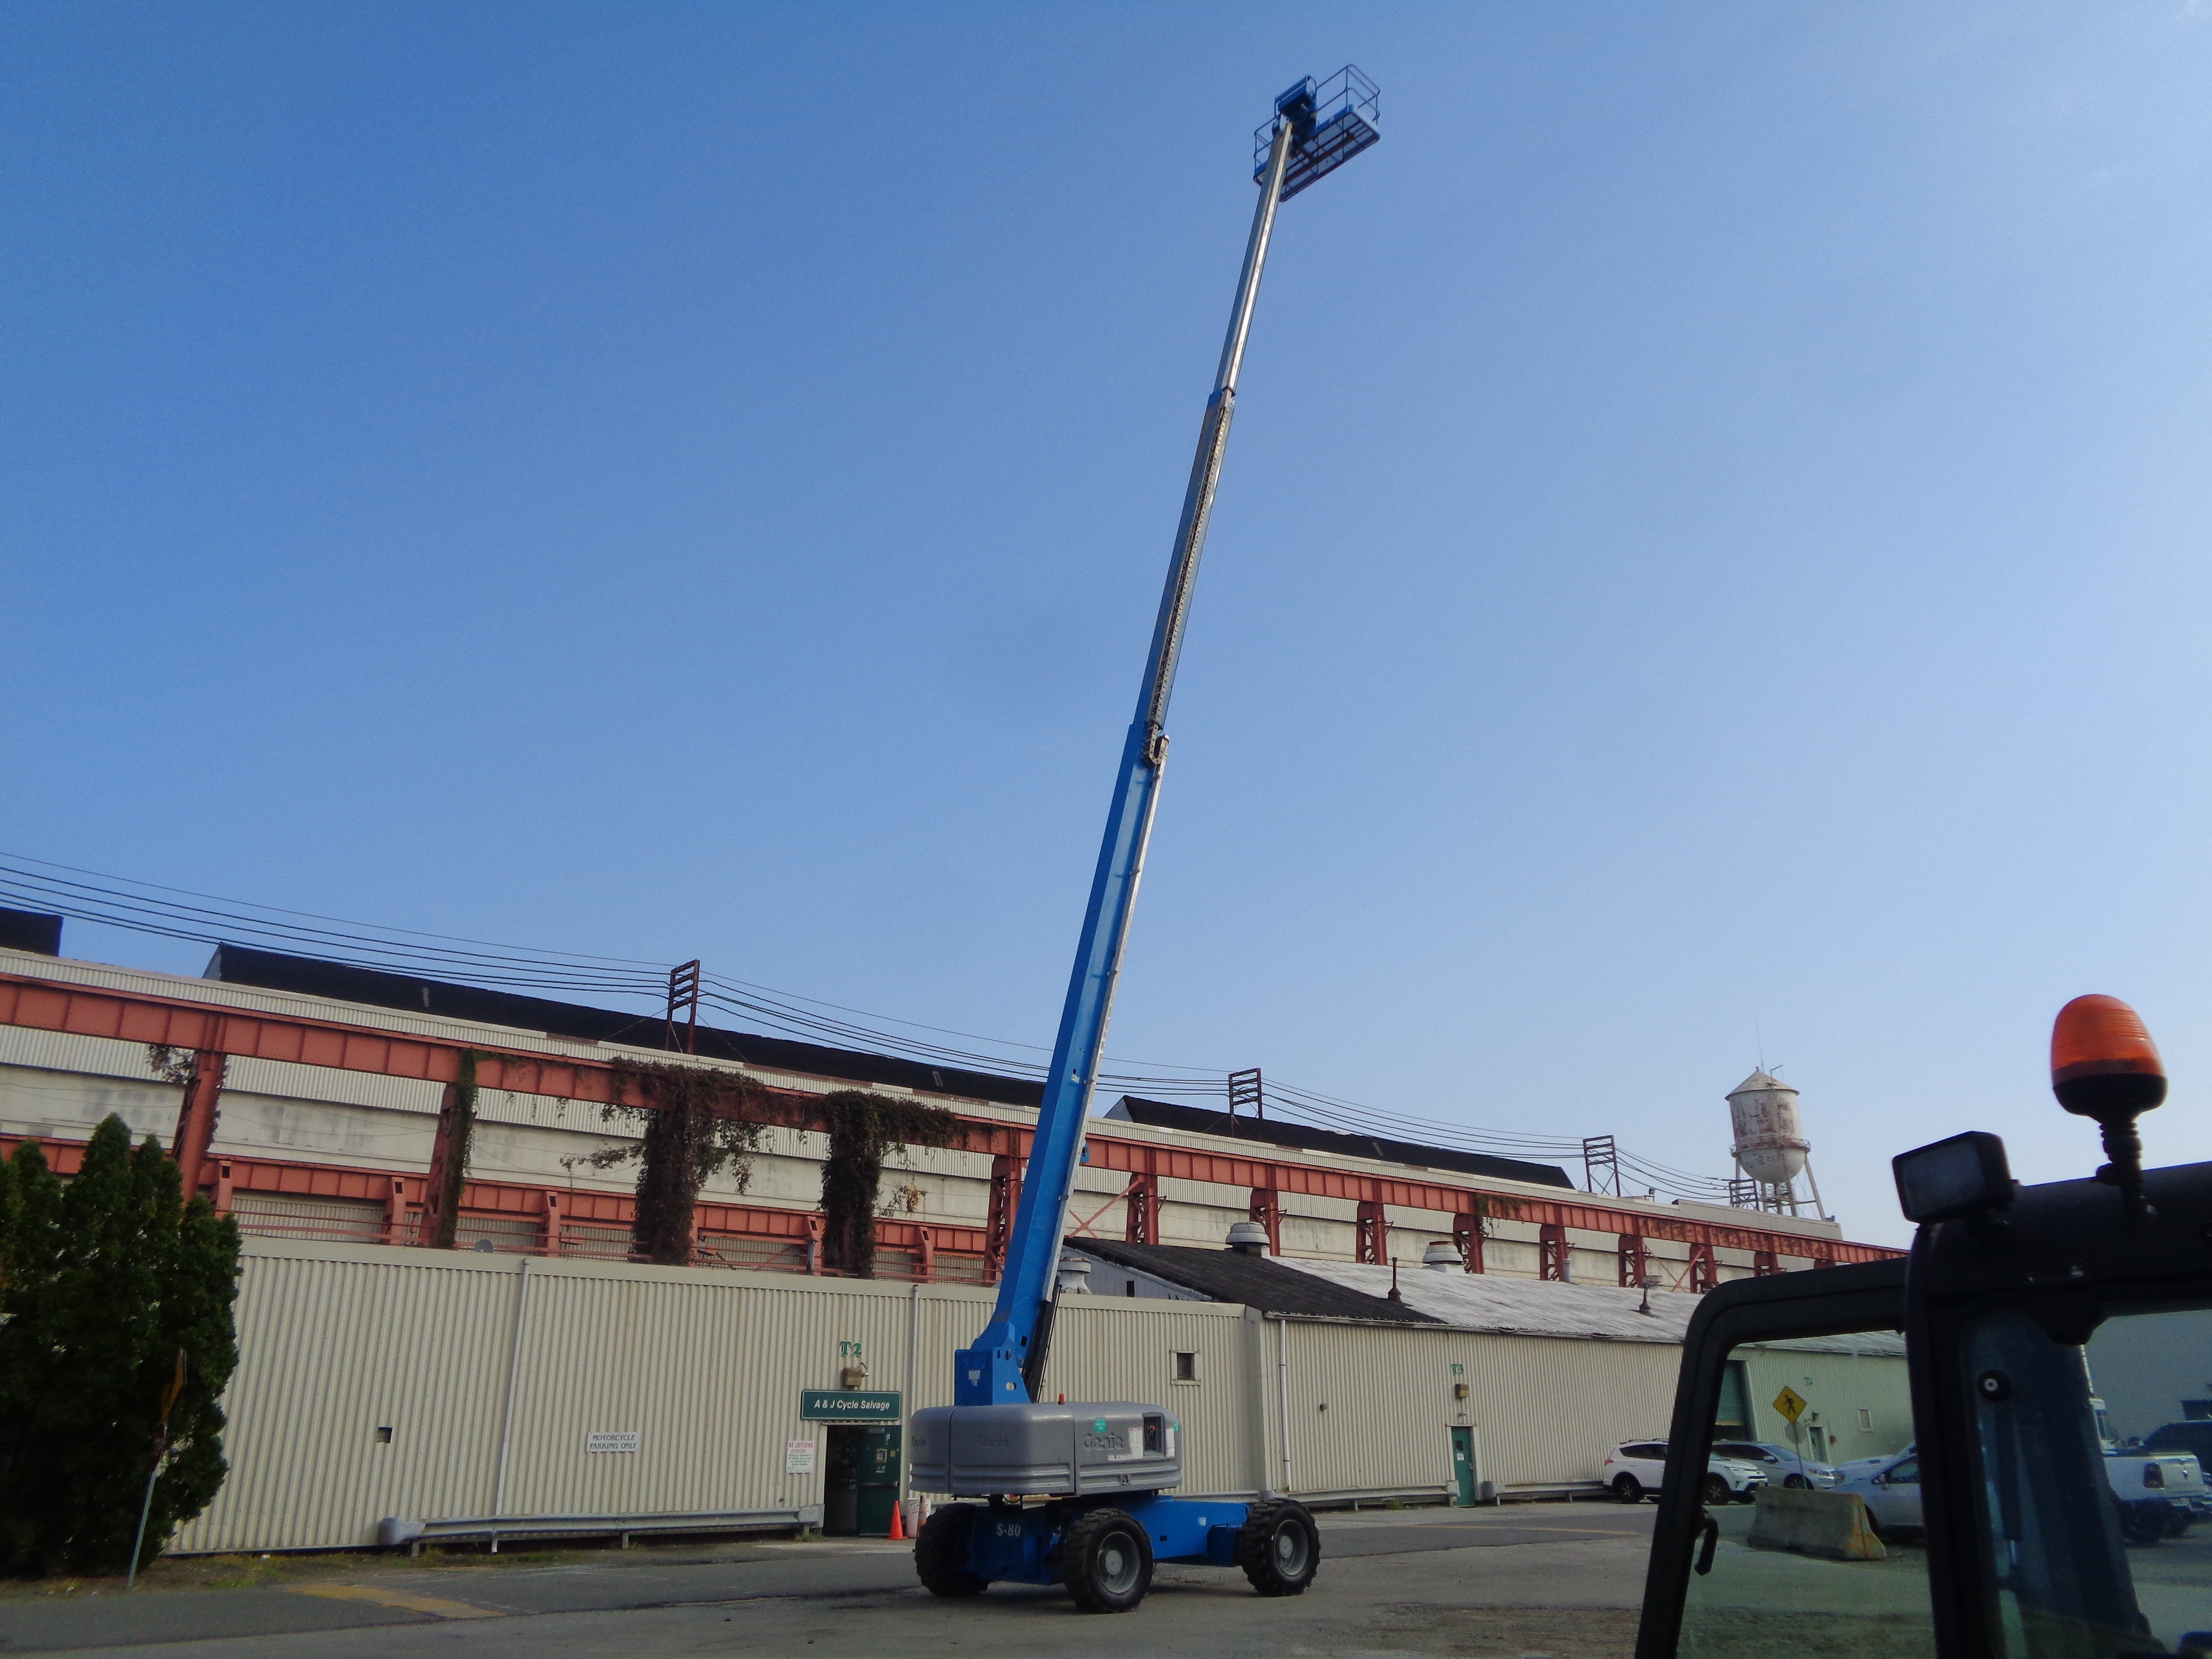 Genie S80 80ft Boom Lift - Image 18 of 22